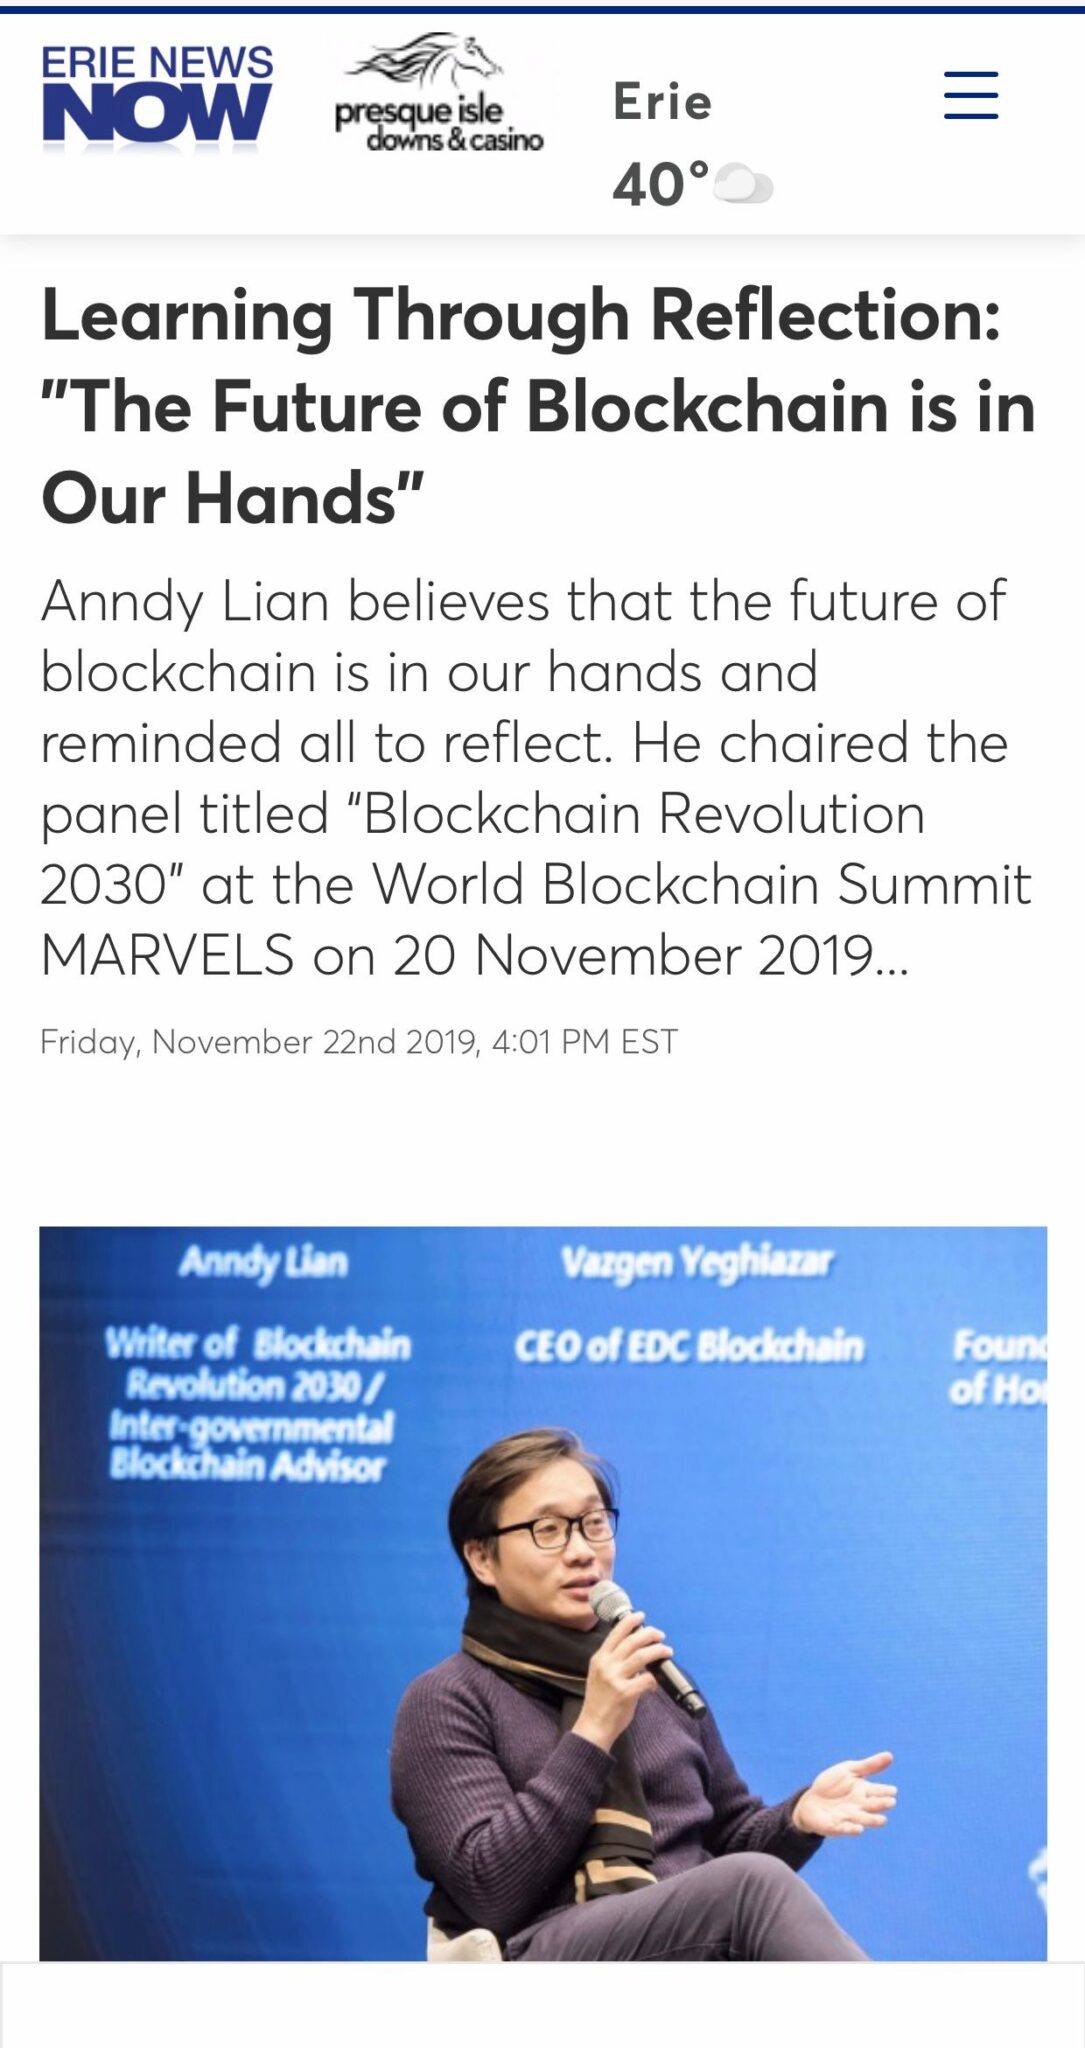 """, Erie News Now: Learning Through Reflection: """"The Future of Blockchain is in Our Hands"""", Blockchain Adviser for Inter-Governmental Organisation 